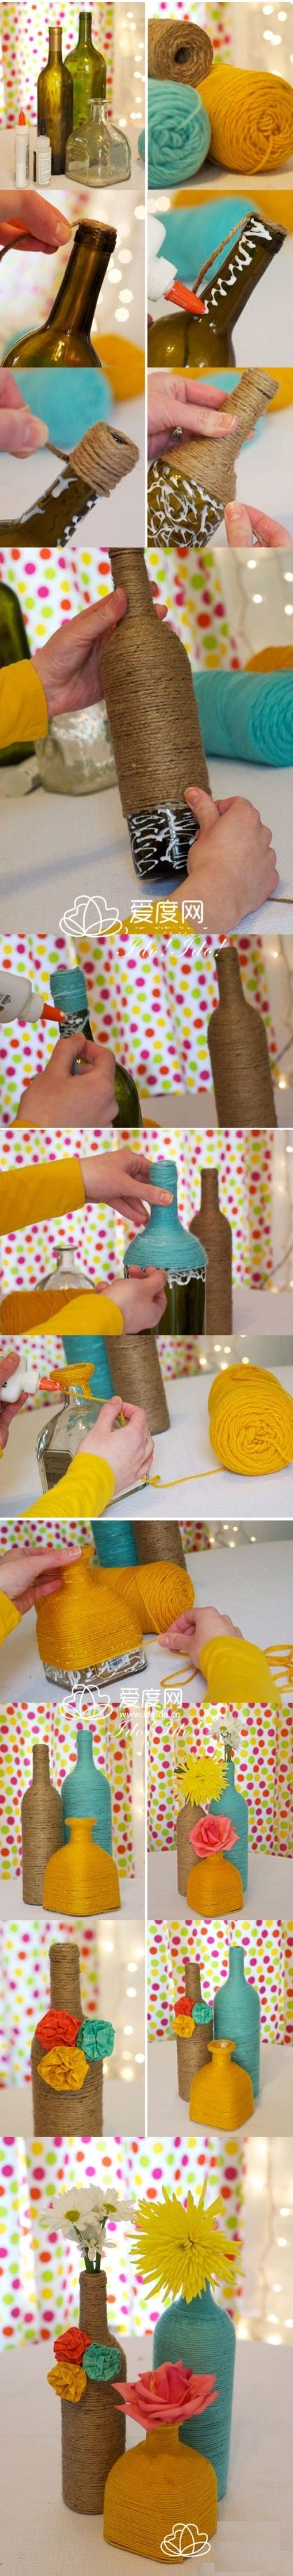 best rope u twine images on pinterest craft bricolage and